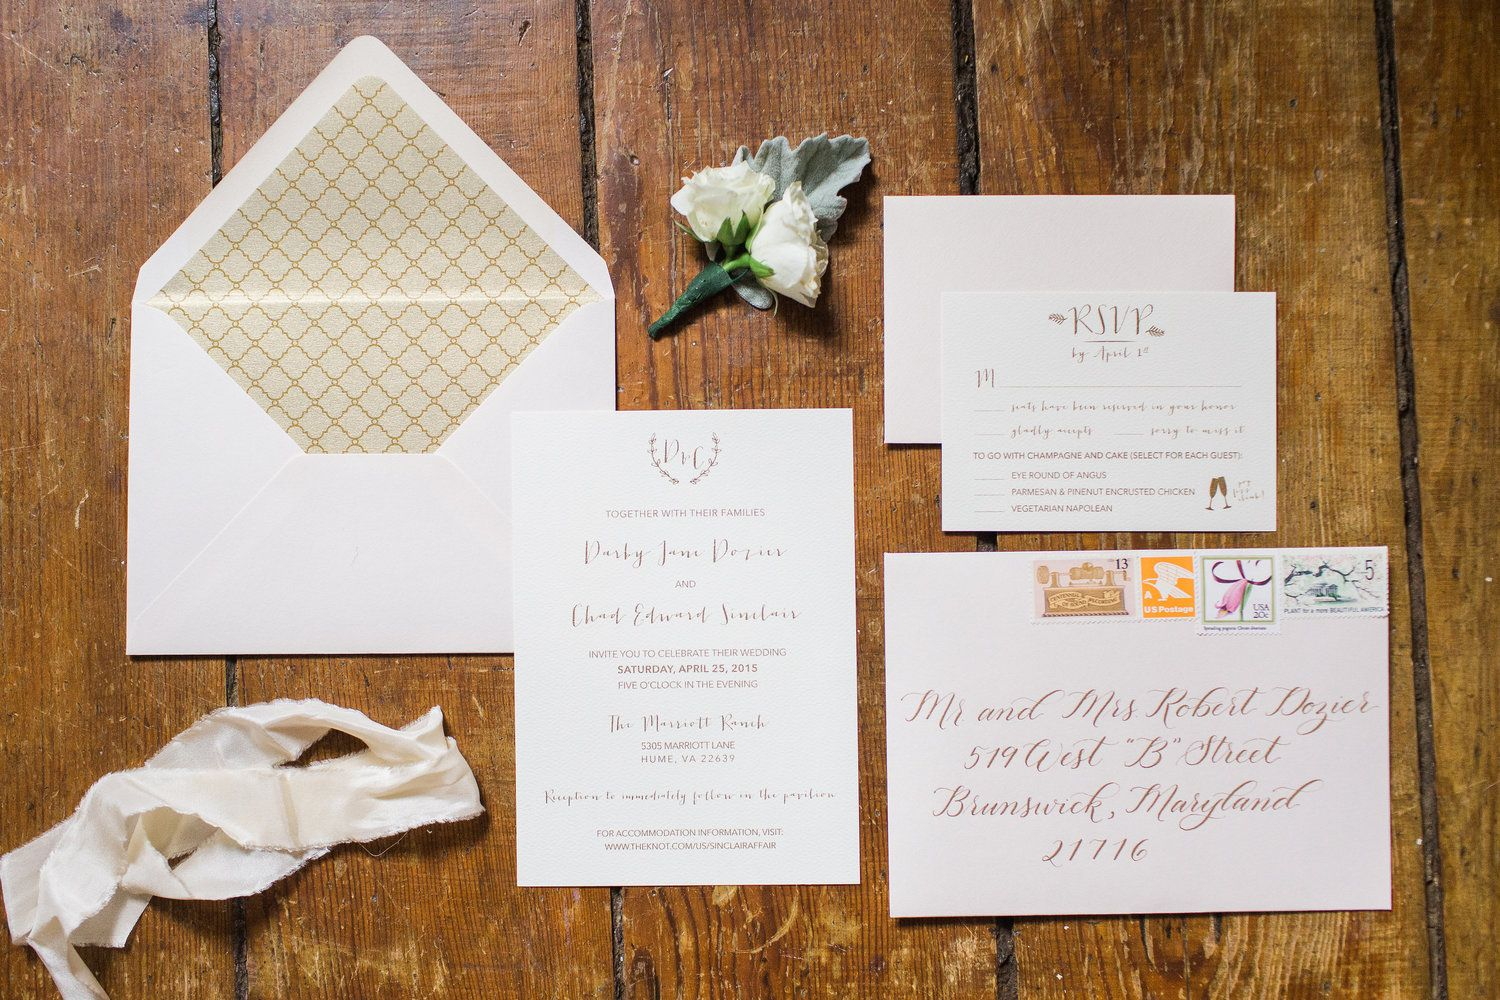 Darby + Chad // Blush and Gold Wedding Invitation suite  Stationery: Shannon Joy Paperie Calligraphy: Sincerely Amy Designs